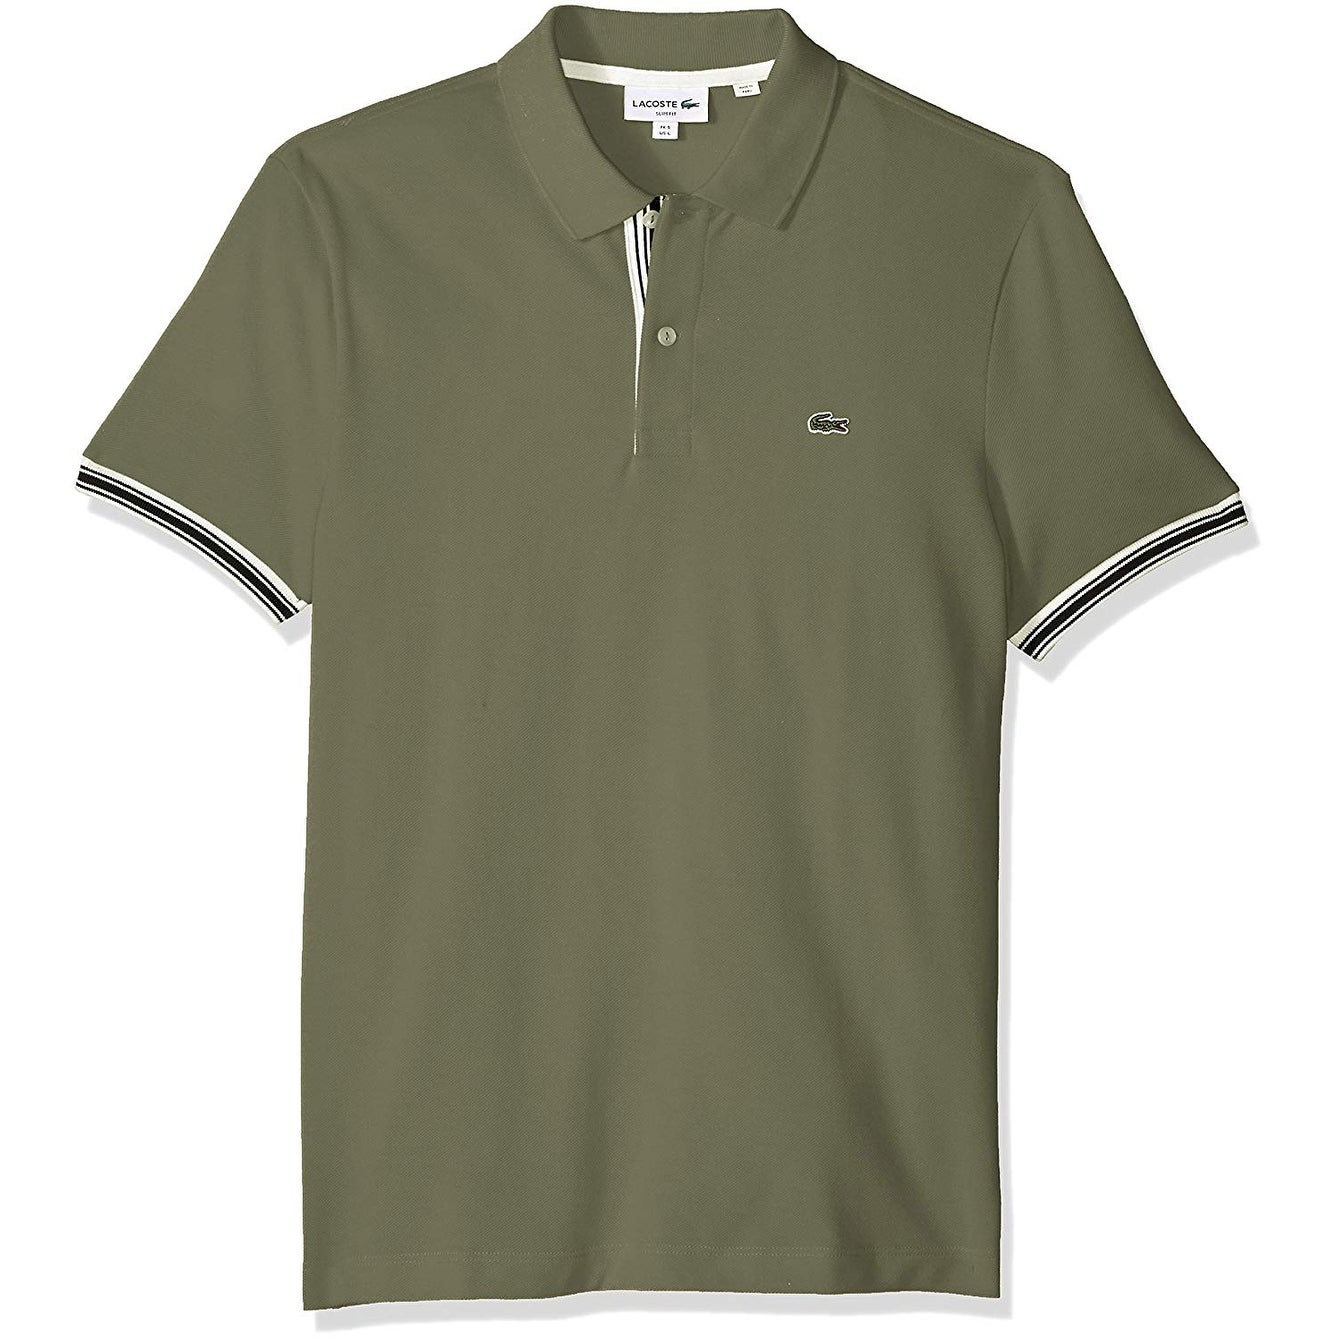 614f98b64d Lacoste Mens Green Size FR 8 US XL Polo Rugby Pique Slim Fit Shirt